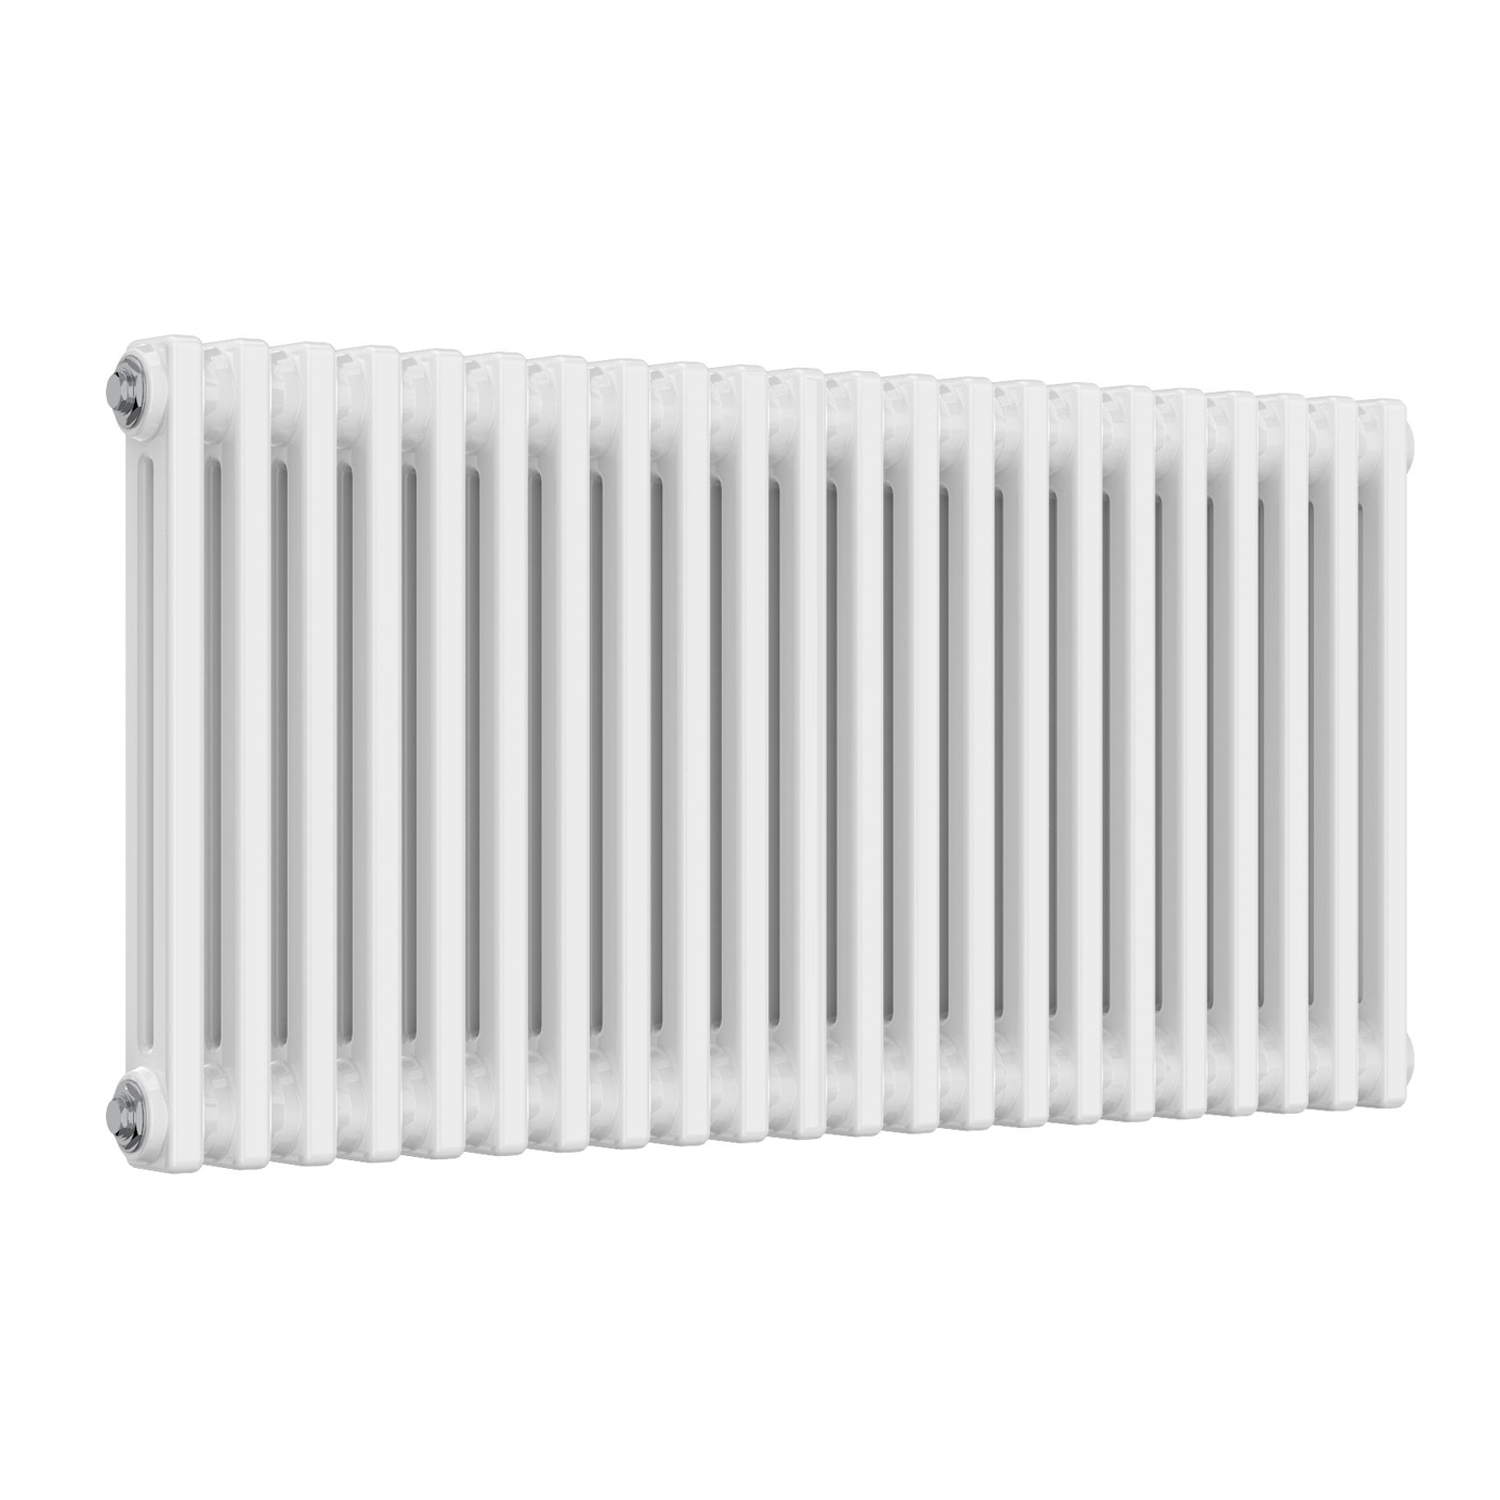 Stelrad Radical Radiator 600mm H x 500mm W Single Convector 10mm Angled TRV